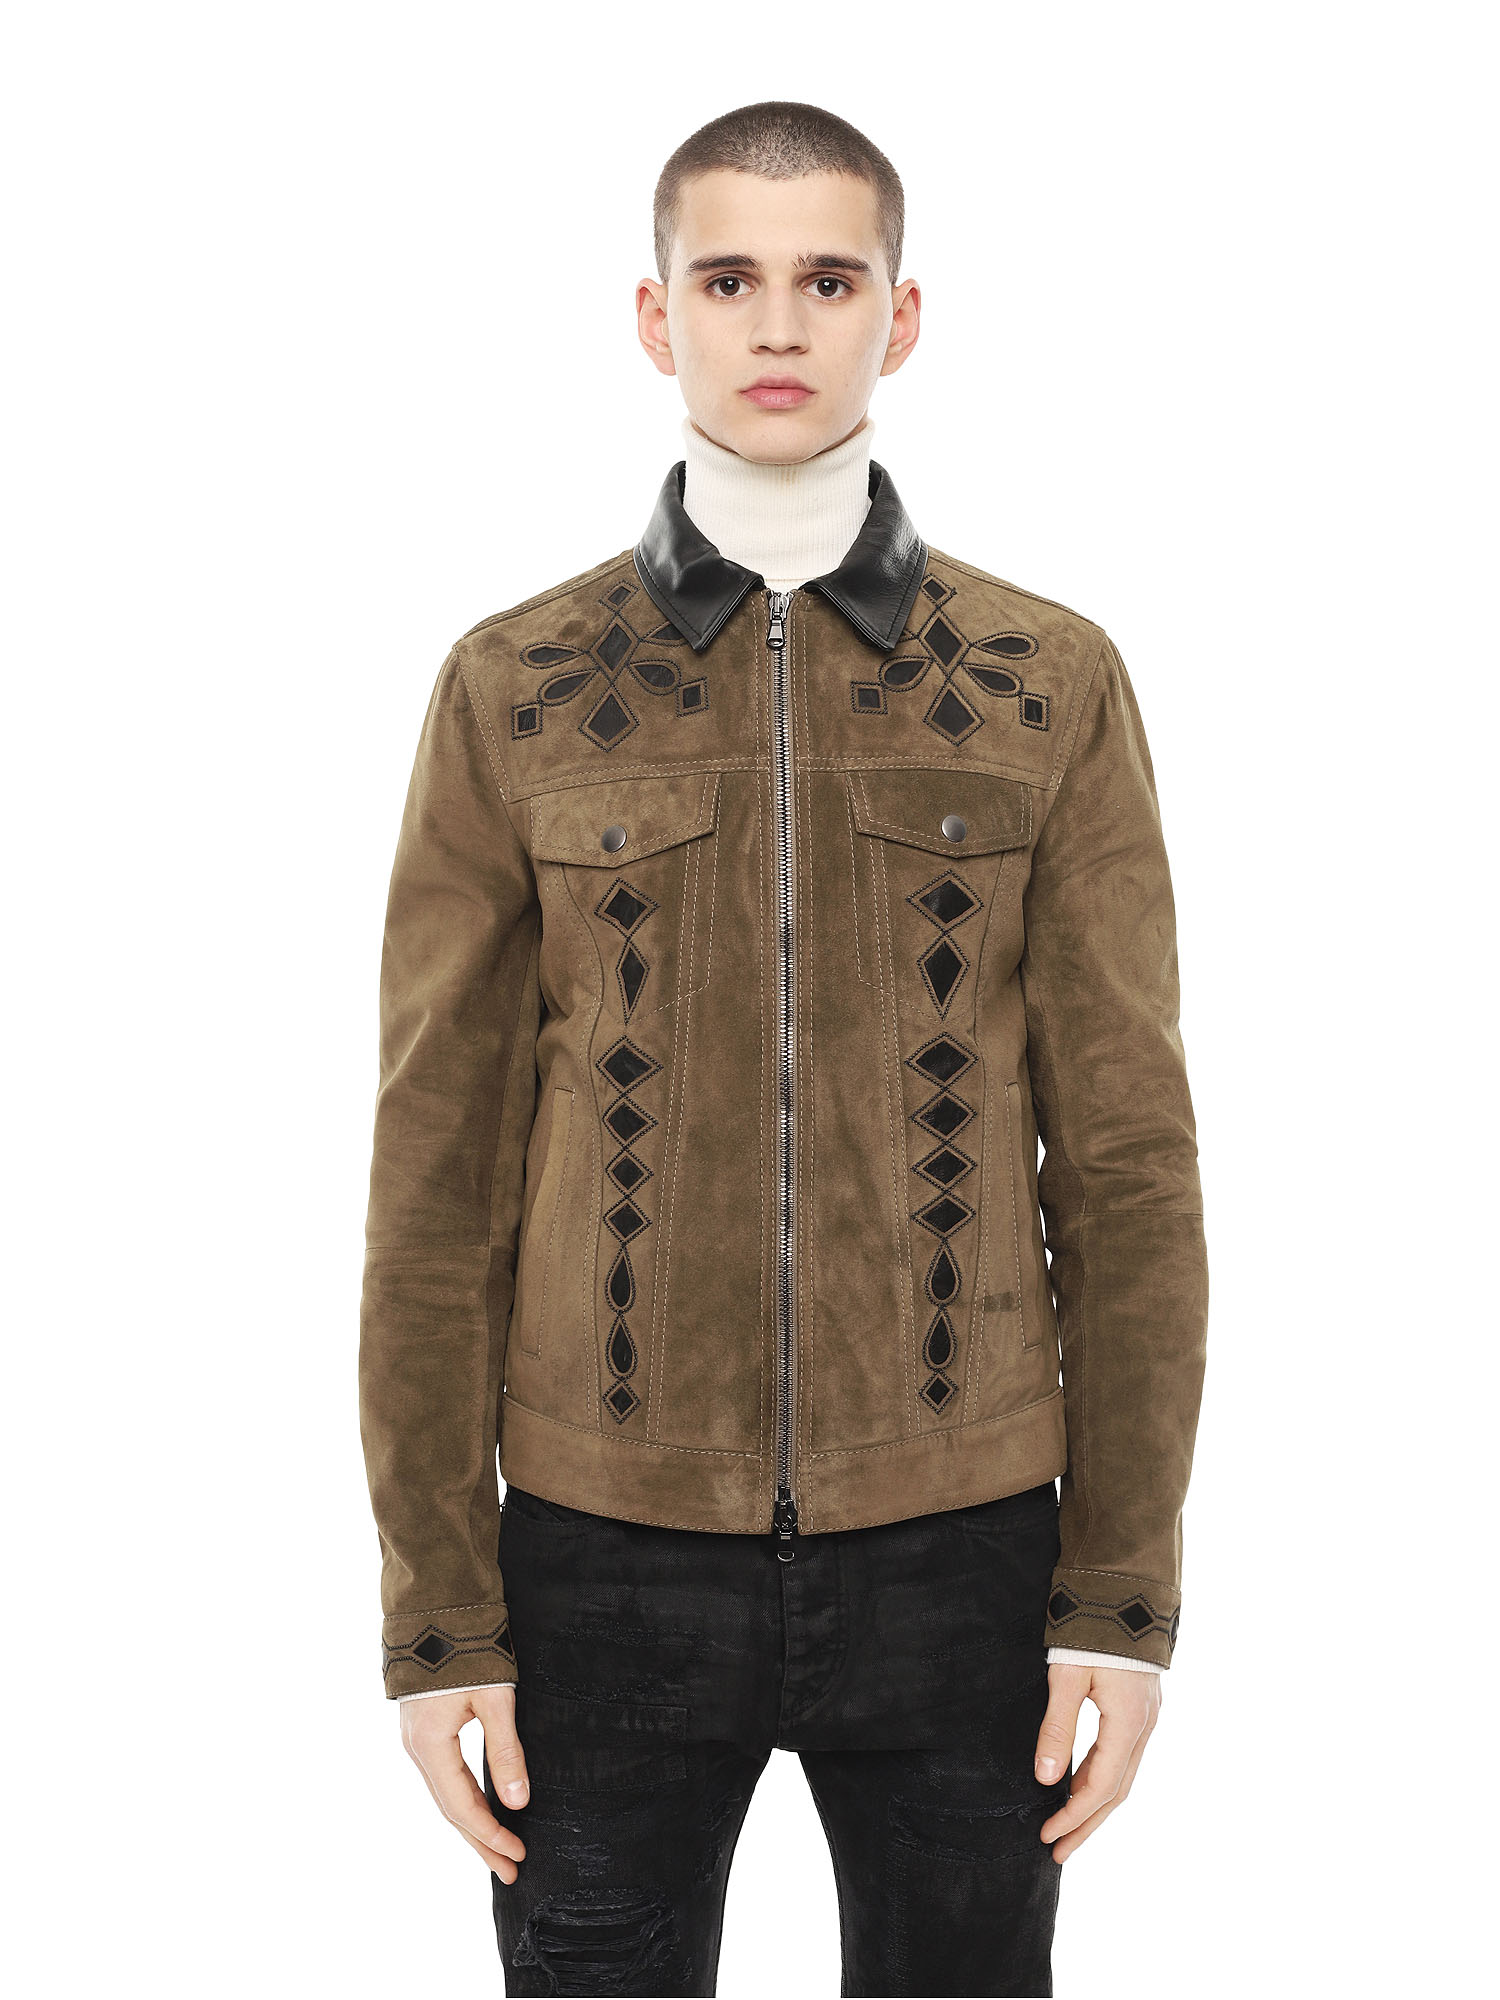 Diesel - LYRICH,  - Leather jackets - Image 1